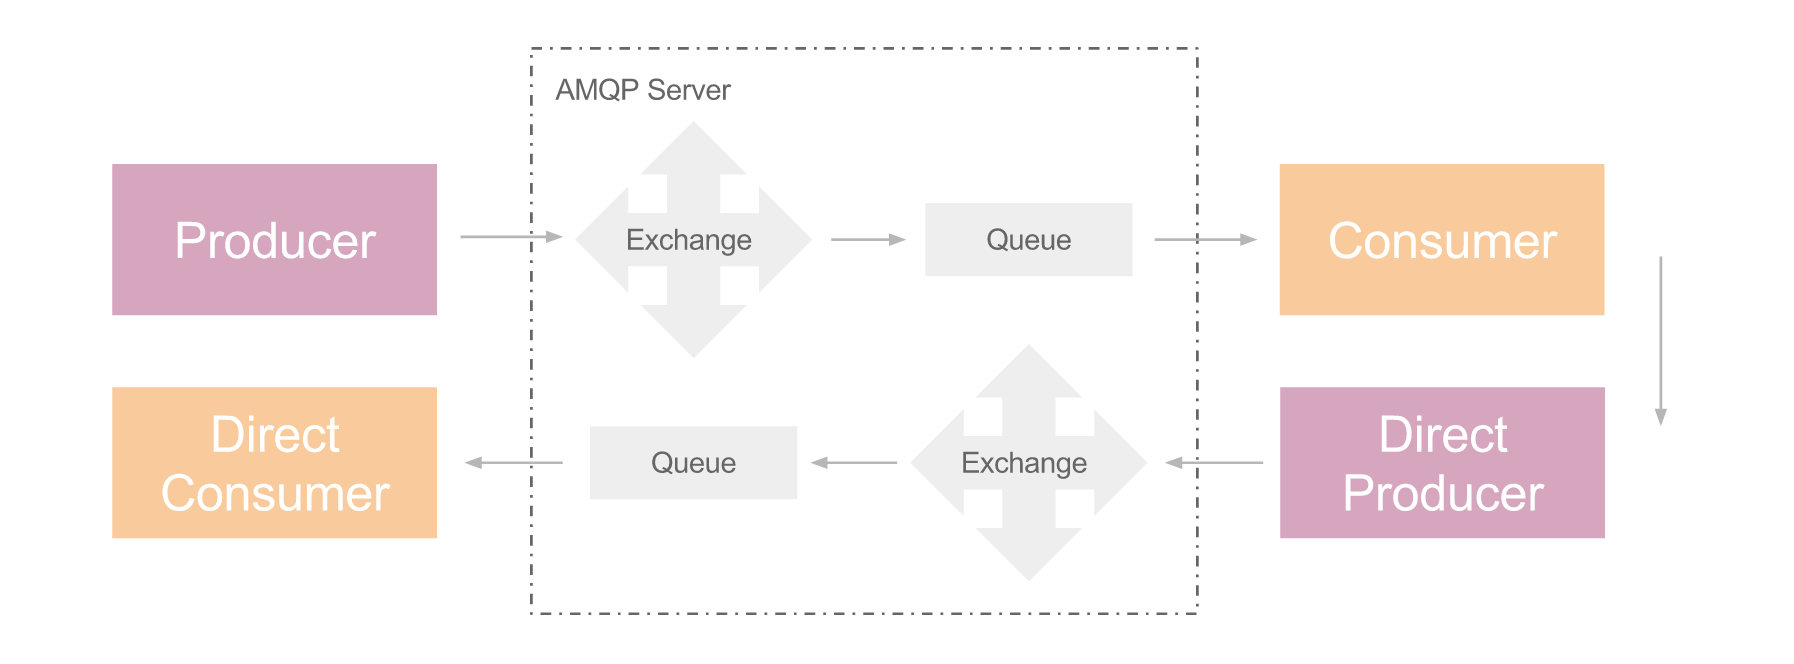 AMQP Overview